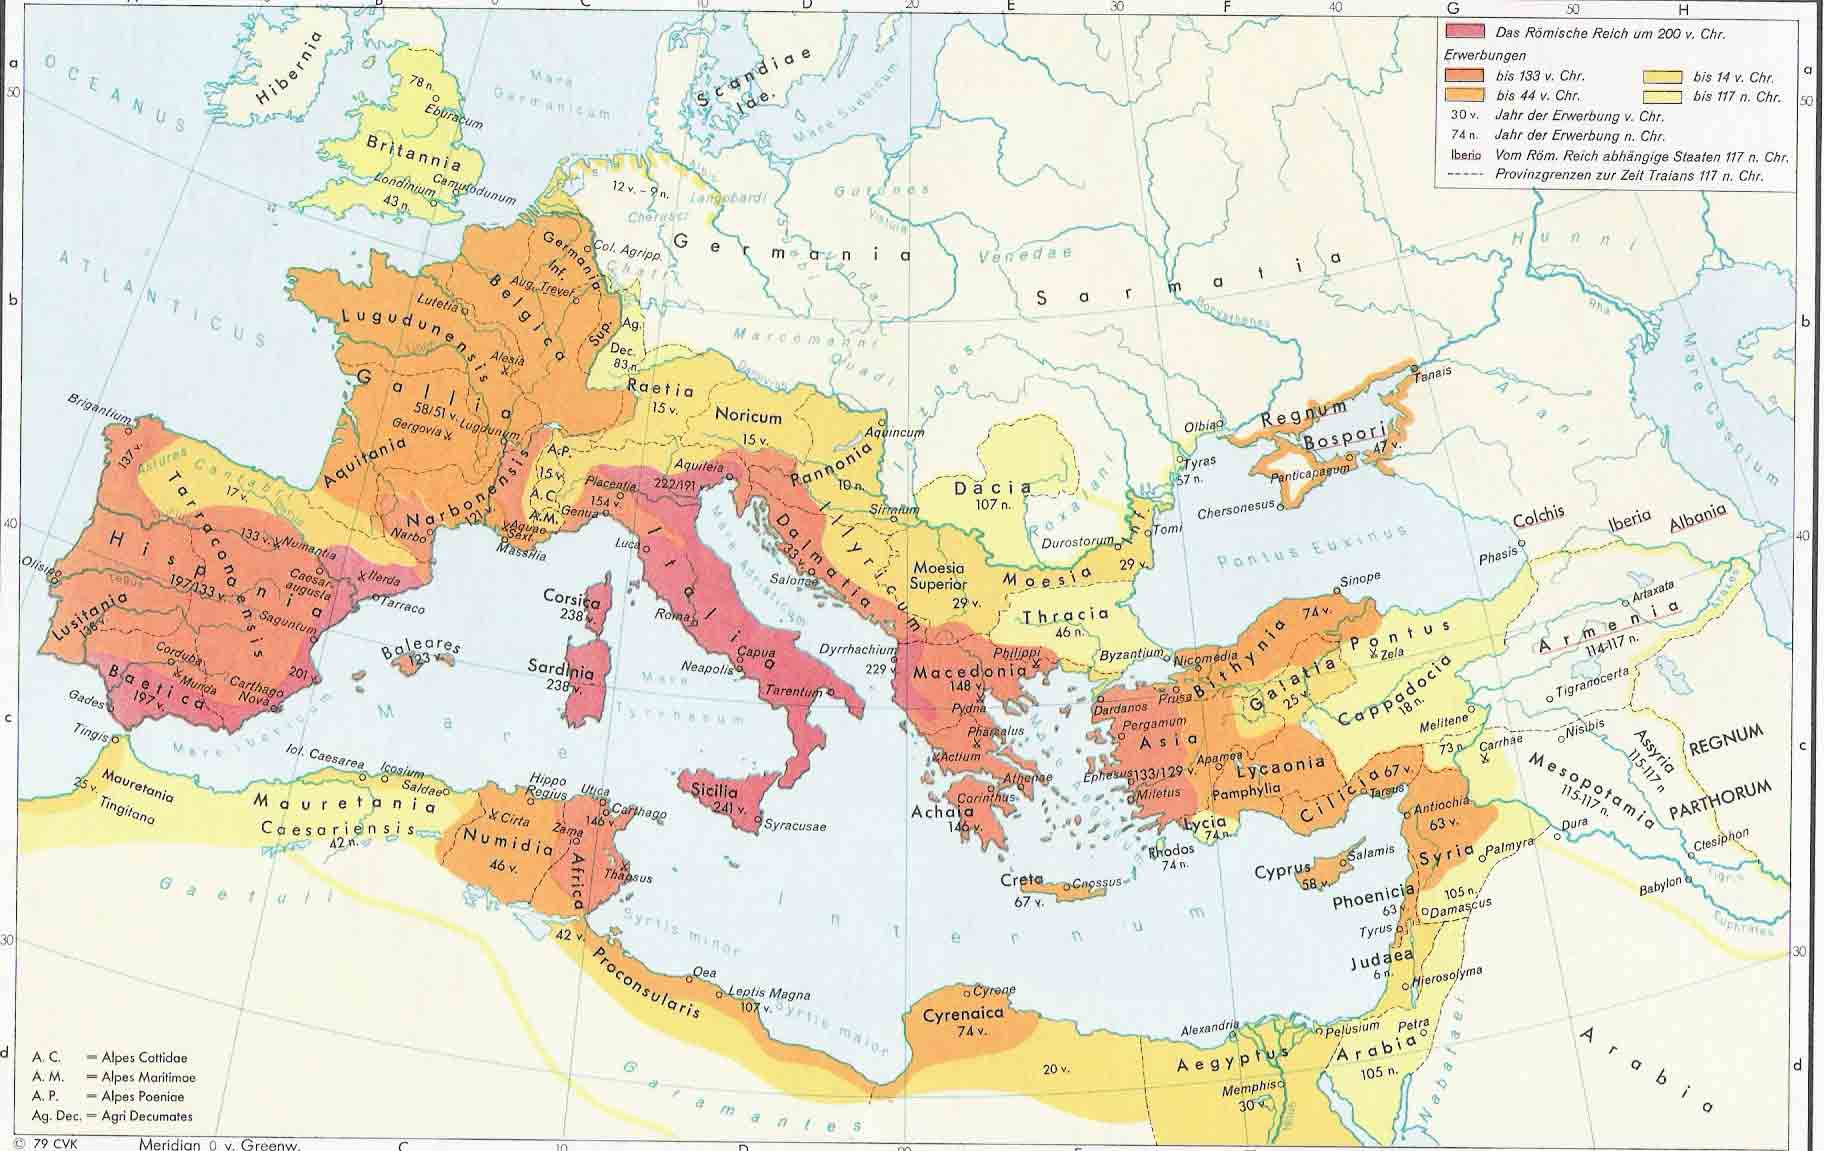 The Roman Empire 200 BC-117